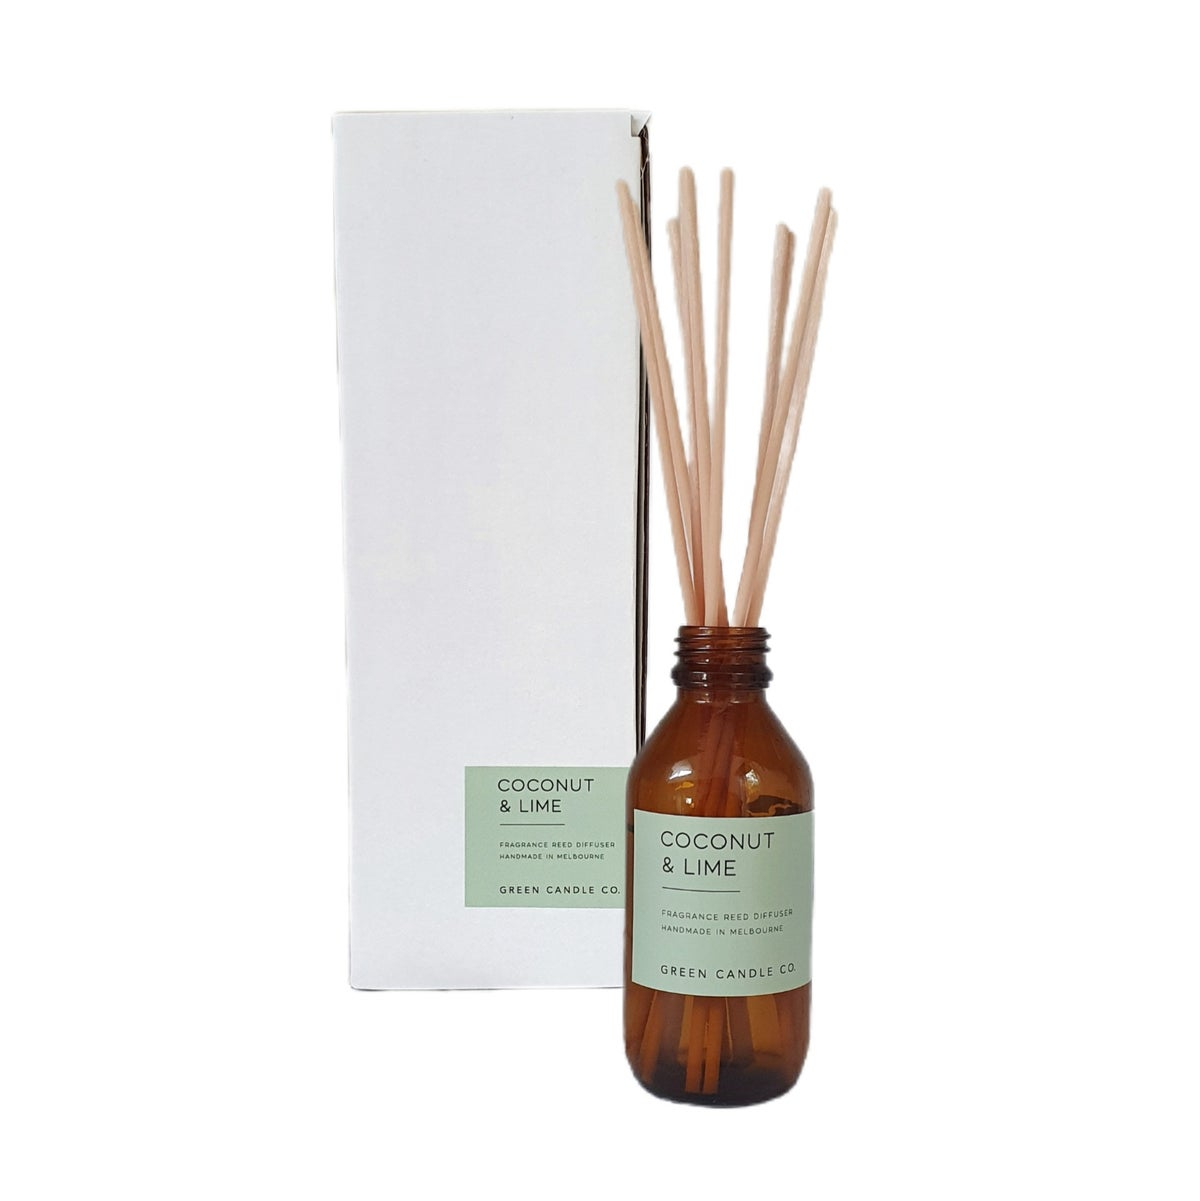 Image of COCONUT & LIME / Reed Diffuser